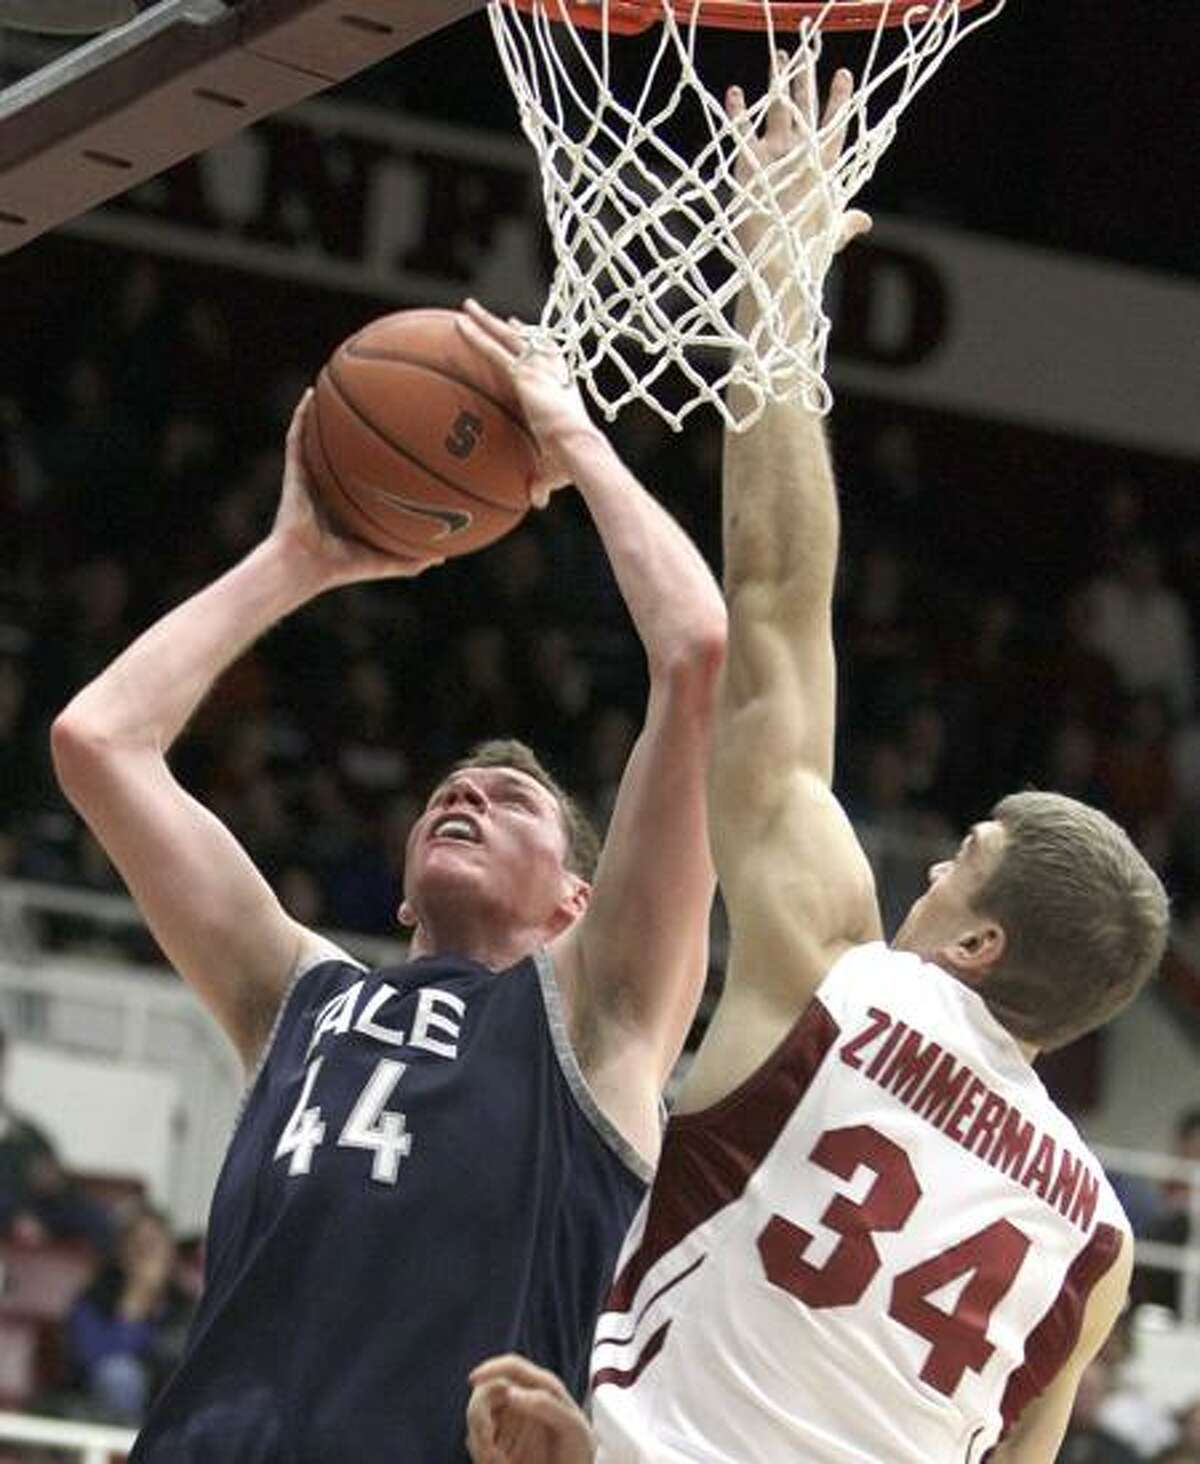 Yale's Greg Mangano (44) goes up for a shot over Stanford's Andrew Zimmerman (34) during the first half of a game last December in Stanford, Calif. (AP file photo/Ben Margot)